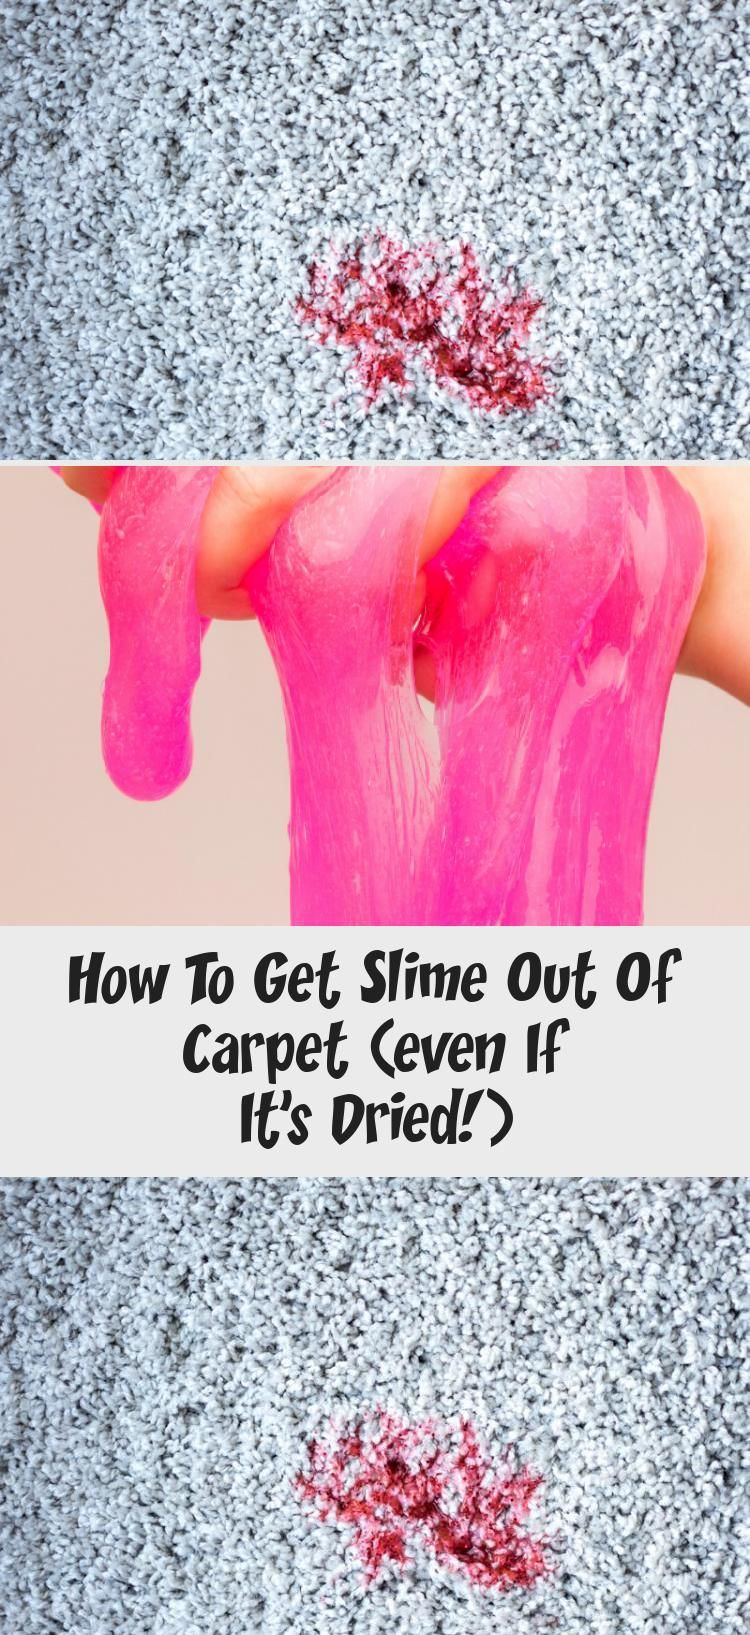 How To Get Slime Out Of Carpet Even If It S Dried Home Design How To Get Slime Out Of Carpet Ver Stain Remover Carpet Cleaning Hacks How To Clean Carpet